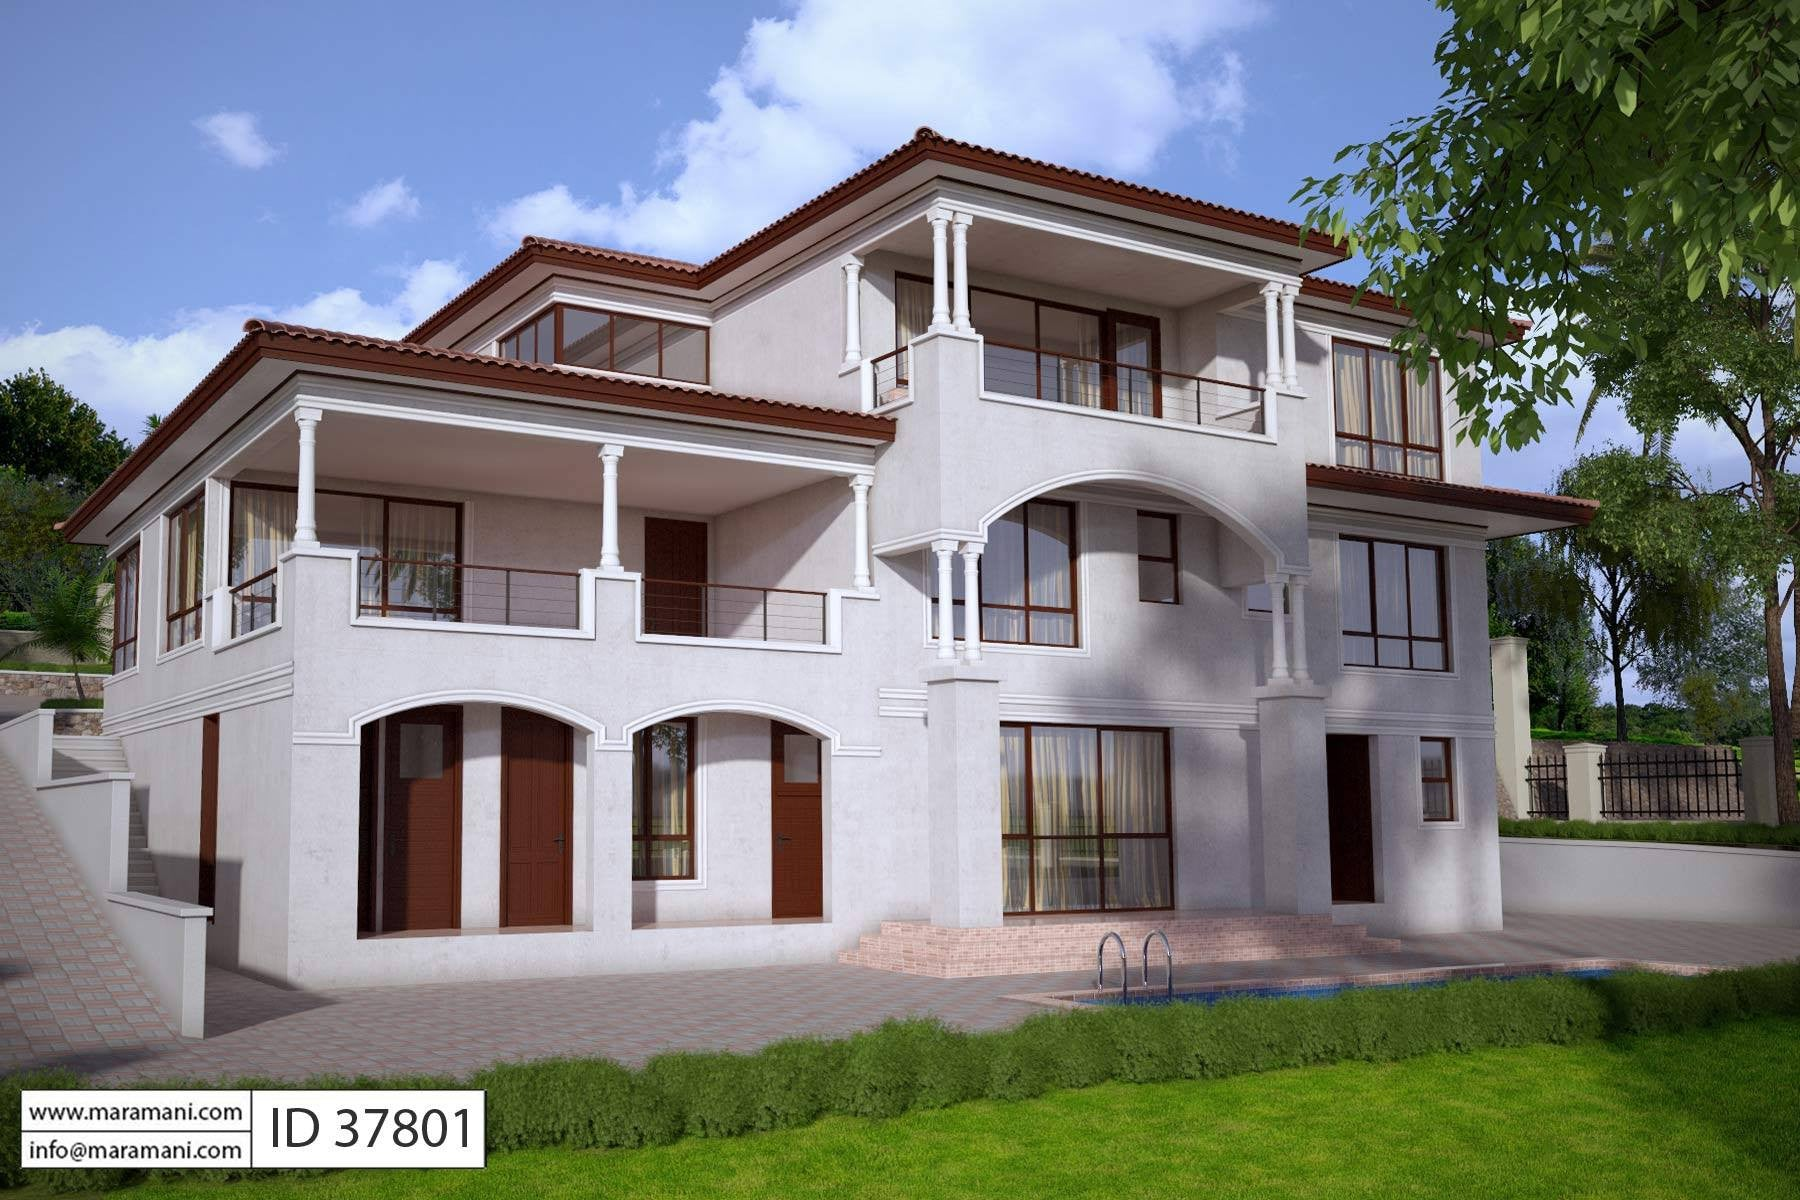 7 bedroom house 7 bedroom house design id 37801 house designs by maramani 10040